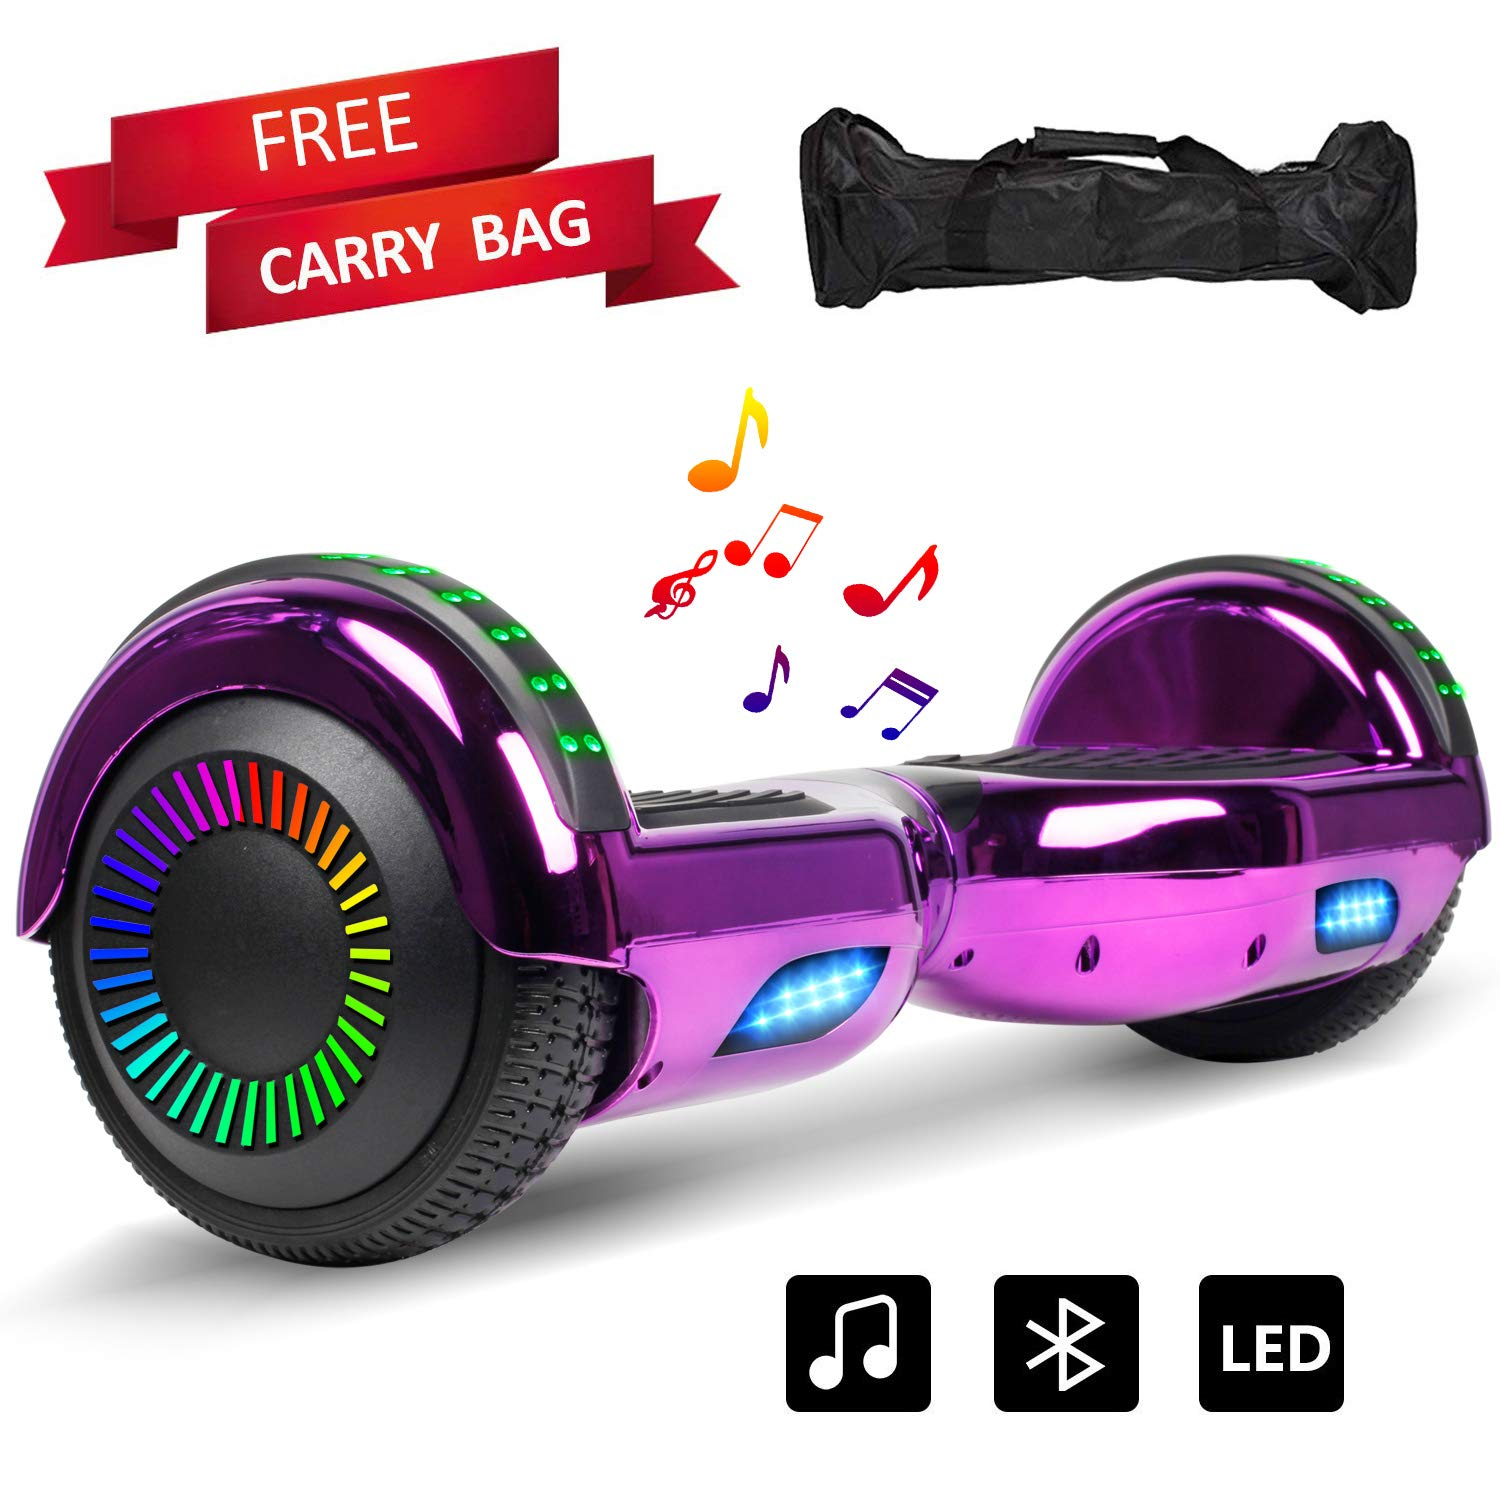 LIEAGLE Hoverboard Self Balancing Scooter Hover Board for Kids Adults with Bluetppth Speaker, SGS Certified and Portable Carrying Bag (Chrome Purple) by LIEAGLE